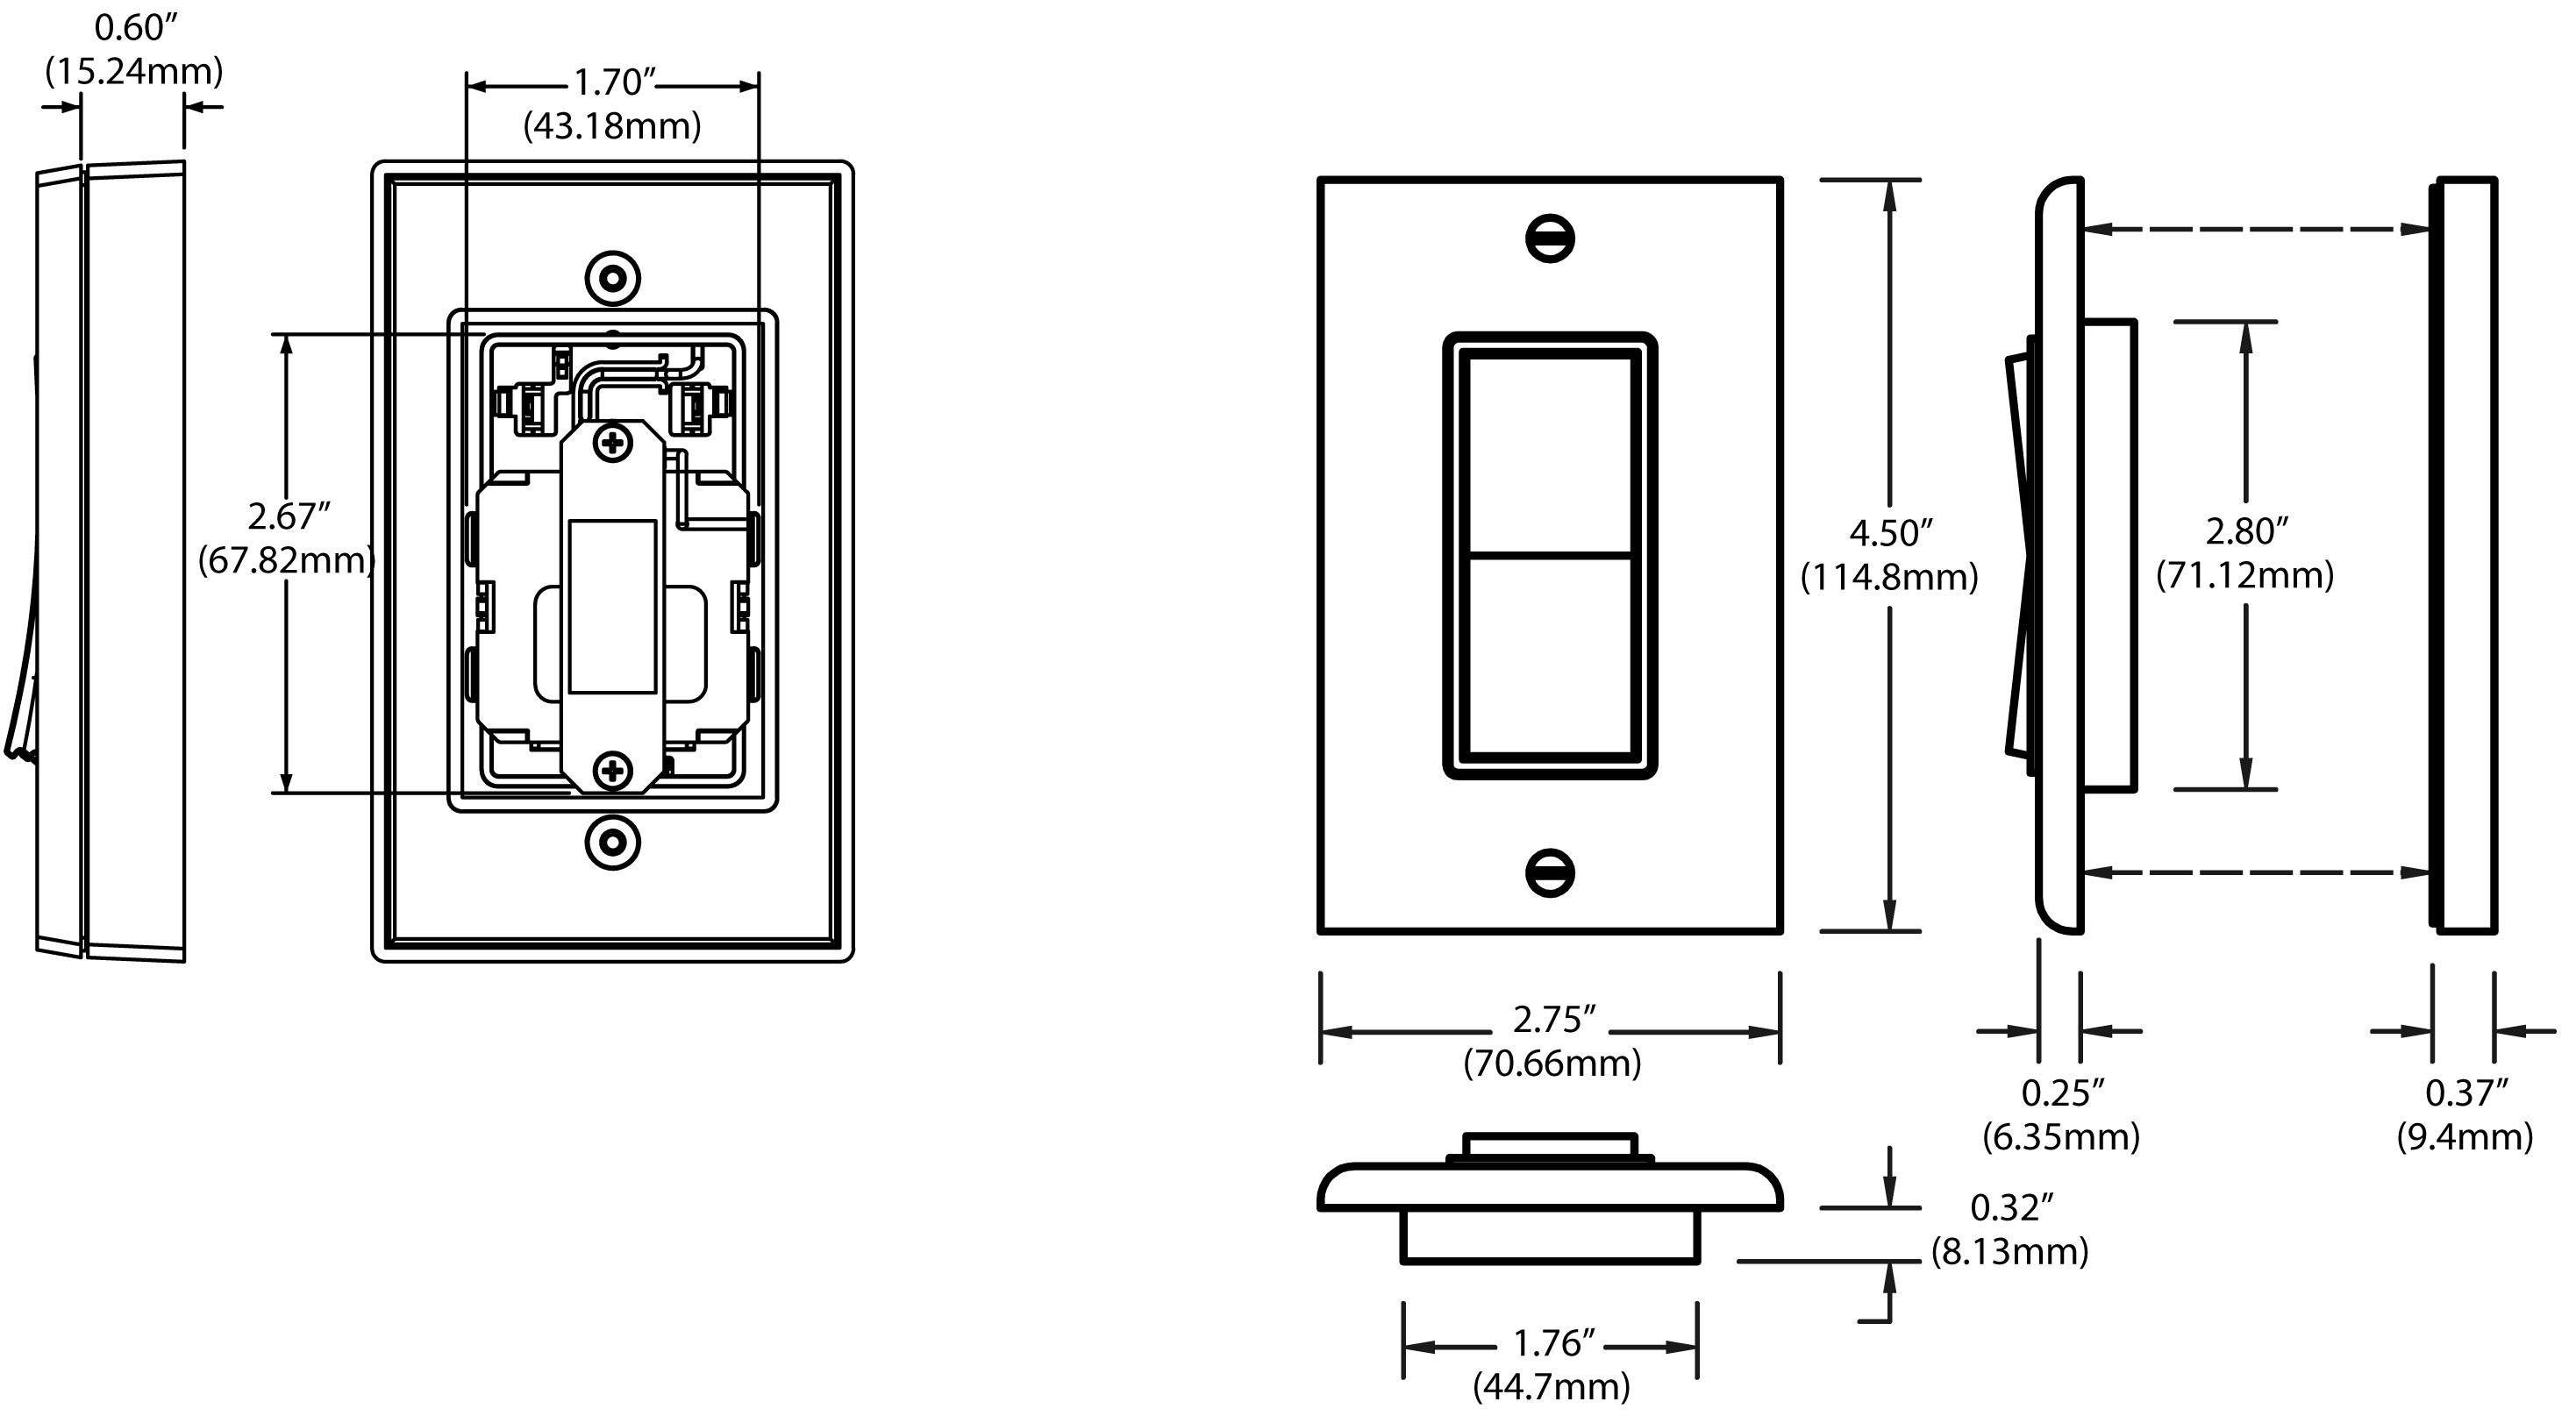 Wiring Diagram Remote Control Light Switch Data Today Way On Power A Leviton 4 Wss0s P0w Wireless Self Powered White Wall Source Create 3